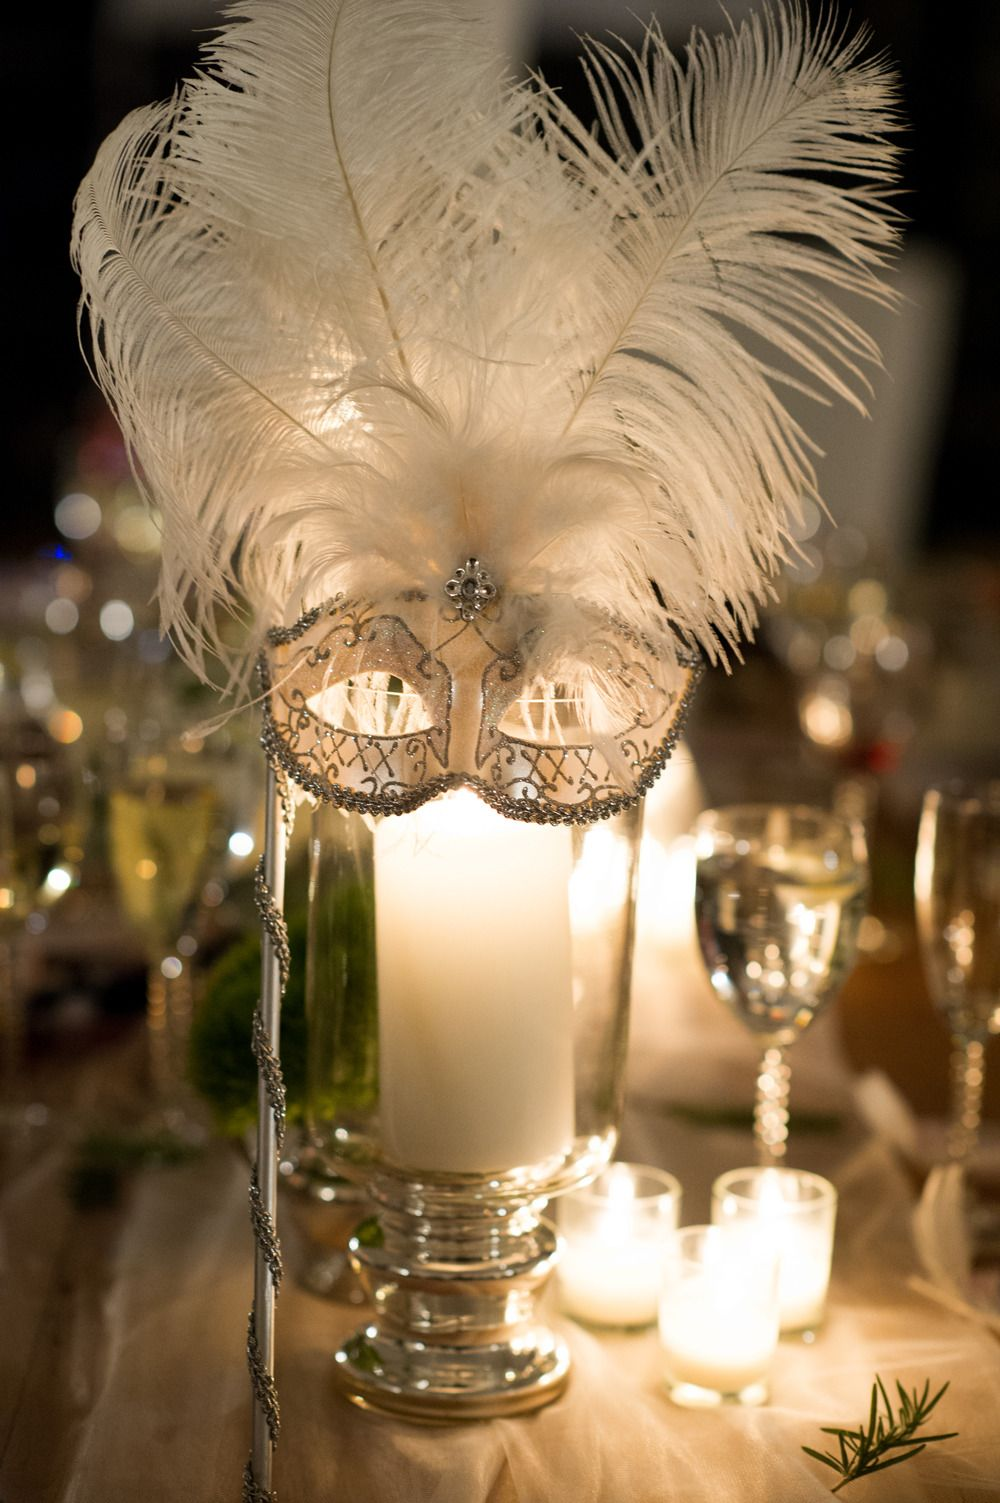 Masquerade Ball Decorations on Pinterest  Masquerade Decorations Masquerade Party Decorations